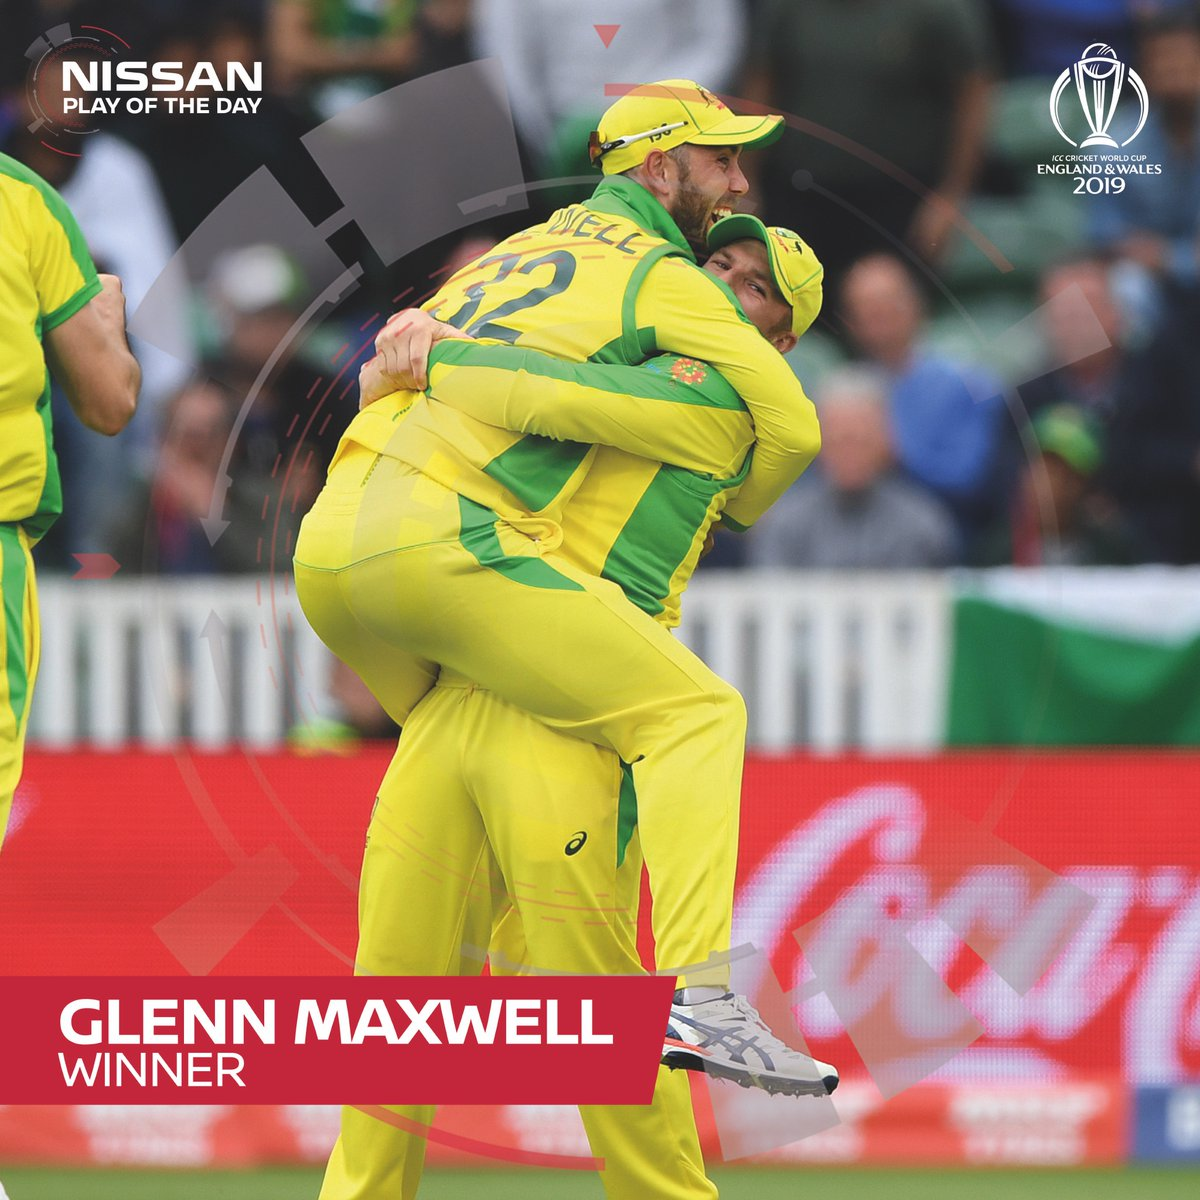 Check out the latest winner for Player of The Day:Glenn Maxwell's excellent run-out to finish yesterday's game against Pakistan is just astonishing!#CWC19